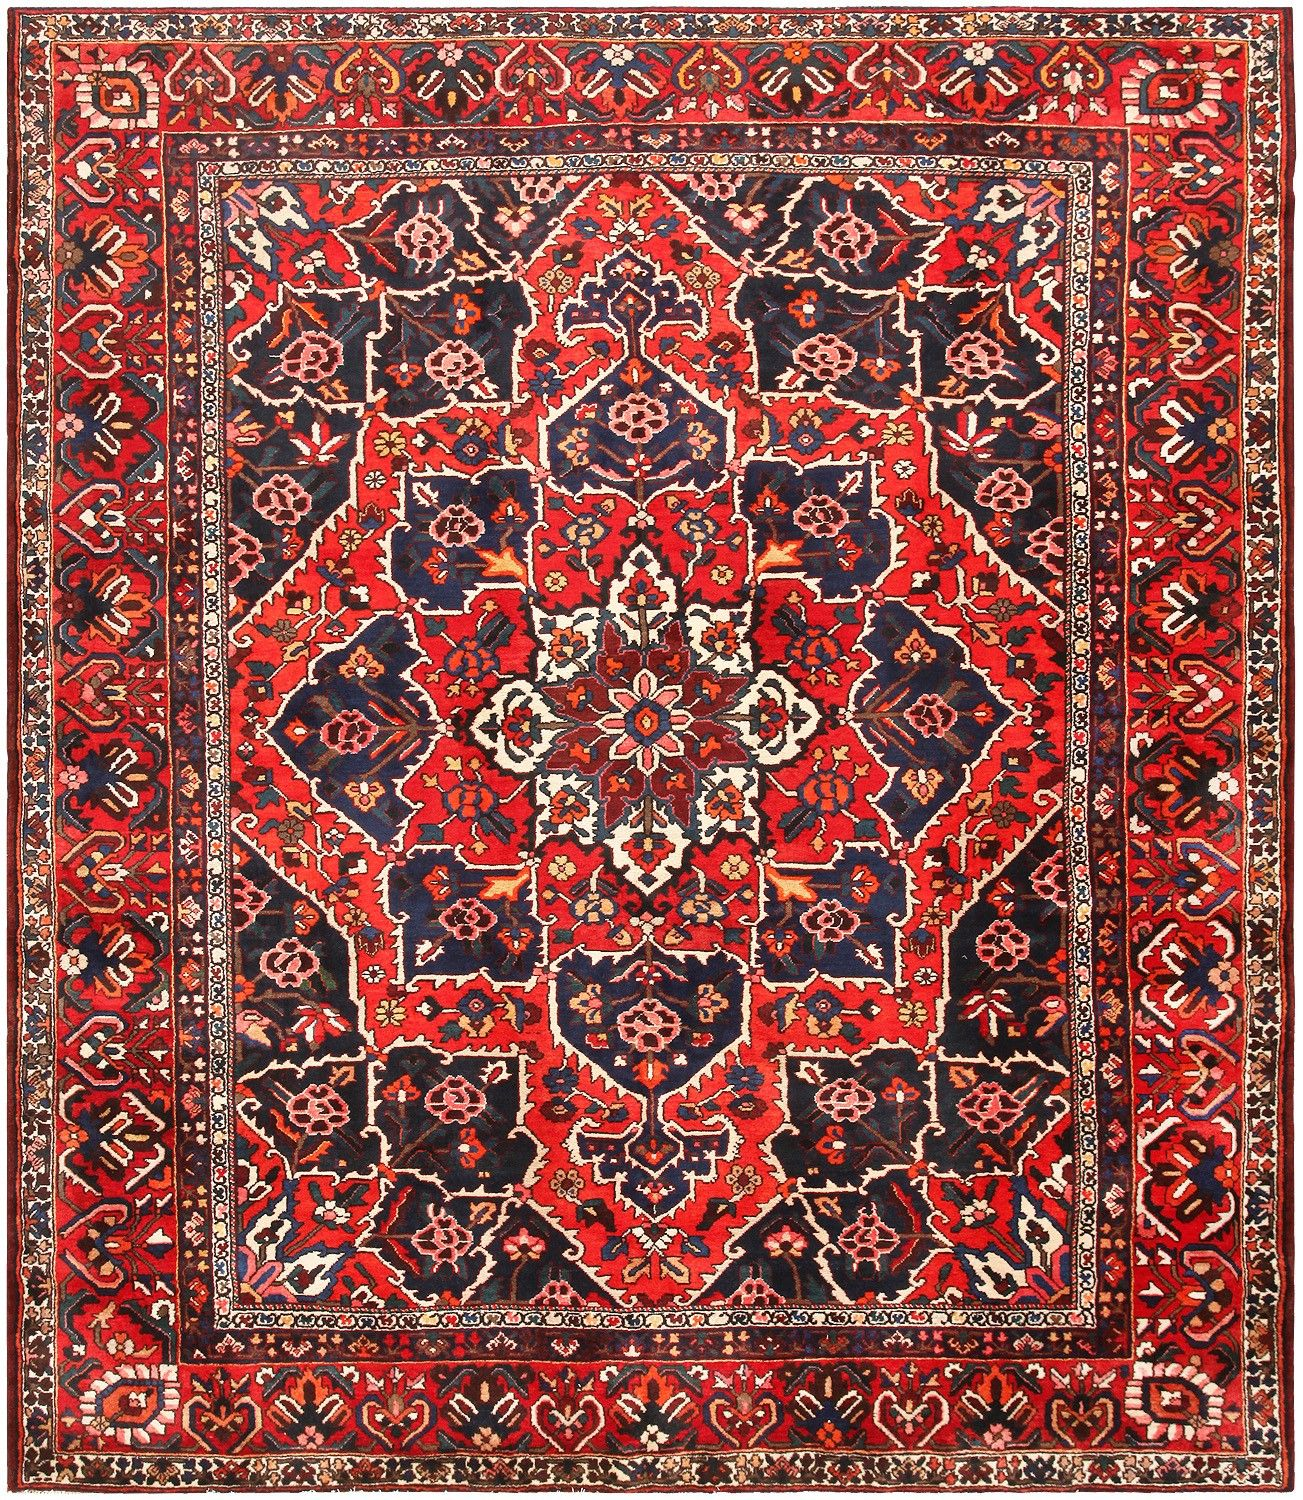 Persian Rugs From Iran: Antique Persian Bakhtiari Rug 46840